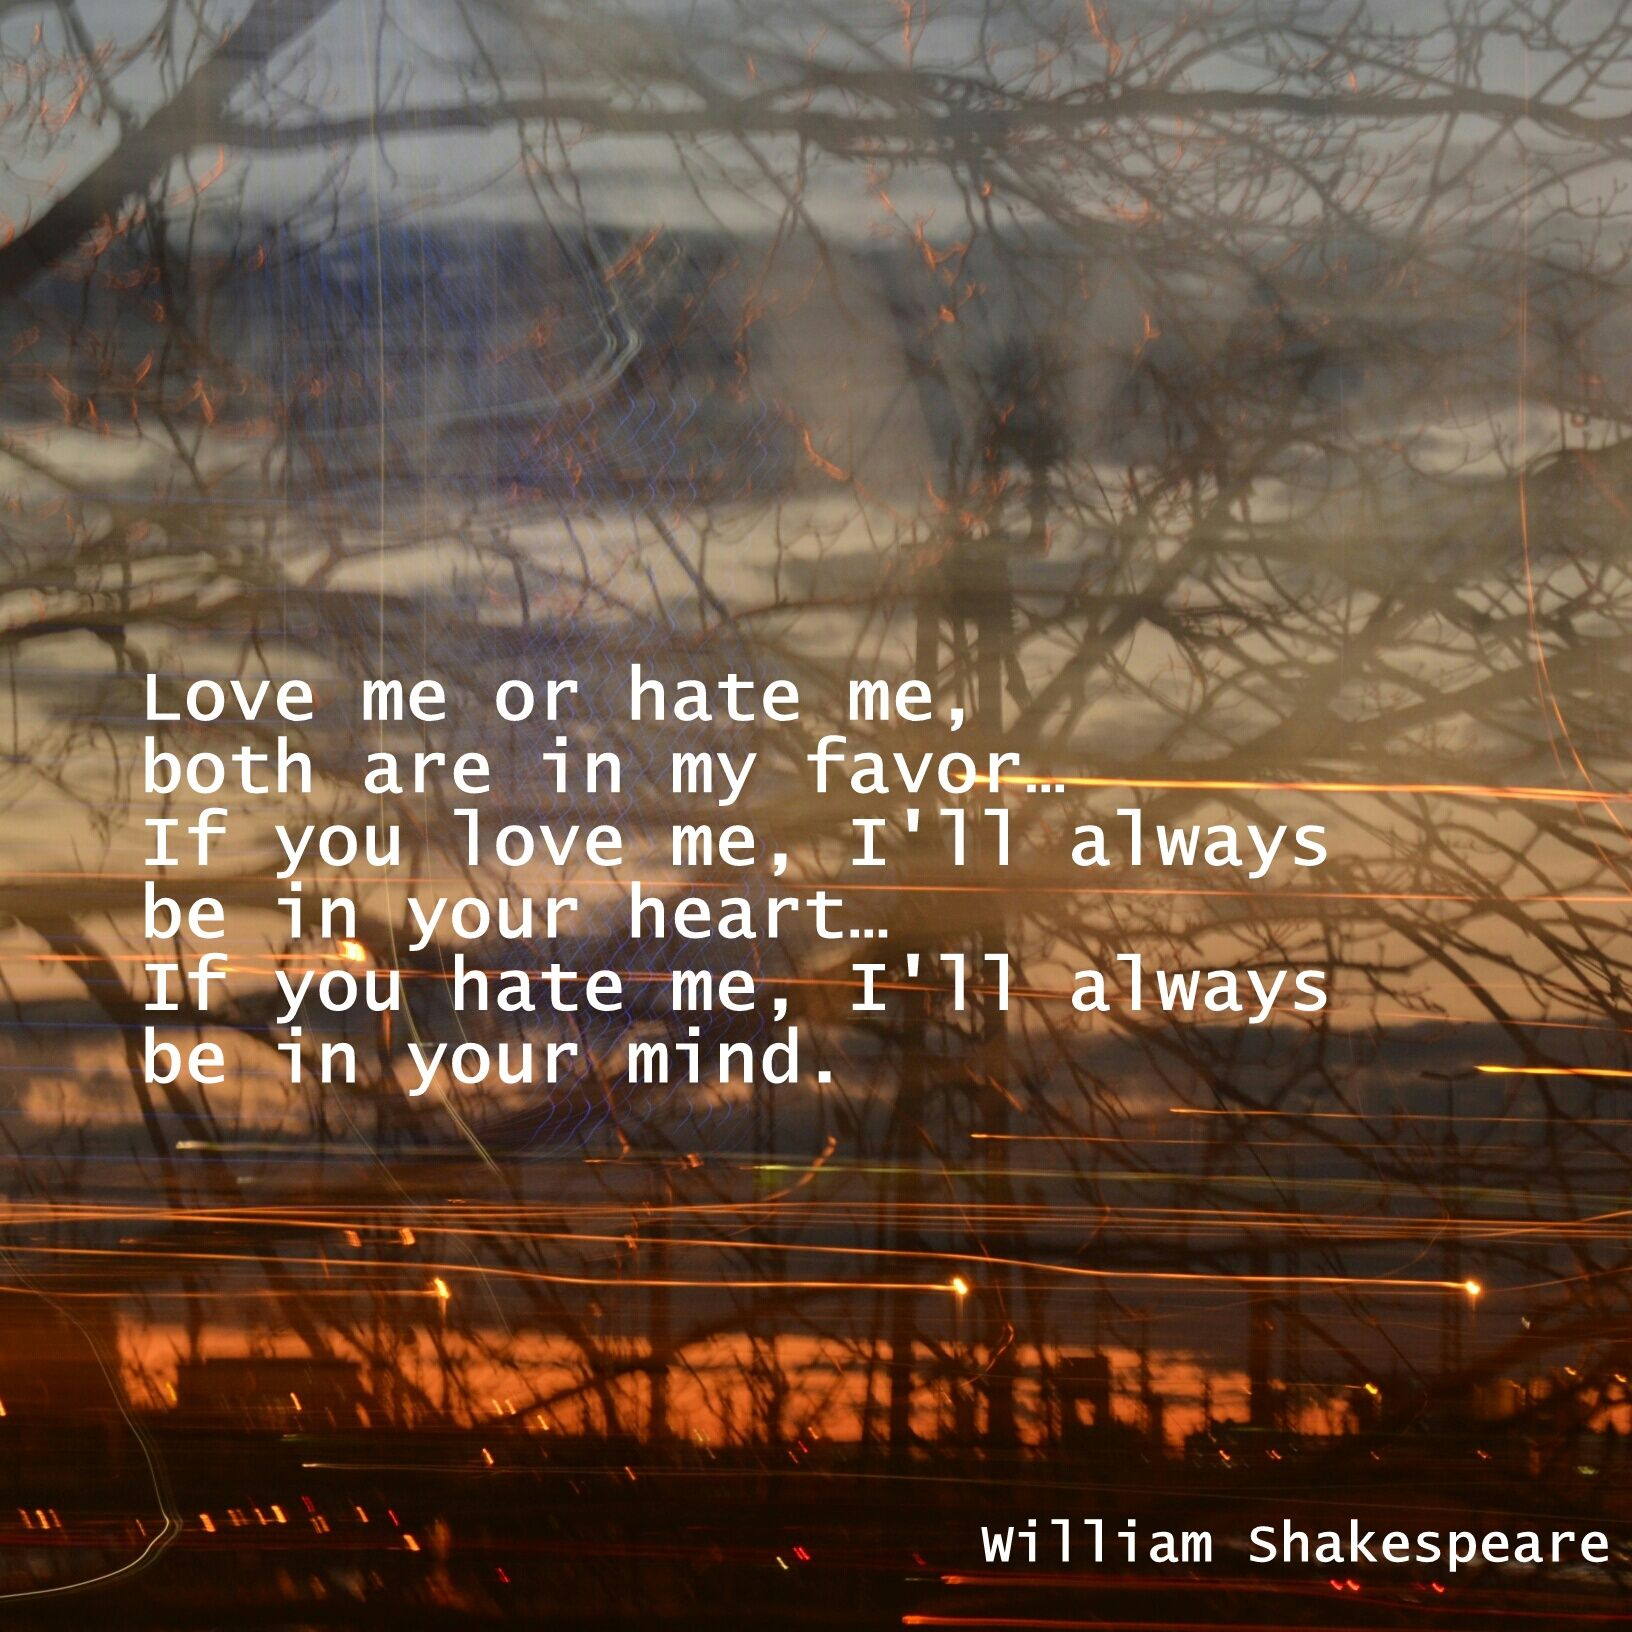 best images about shakespeare william 17 best images about shakespeare william shakespeare quote on love and fundraising